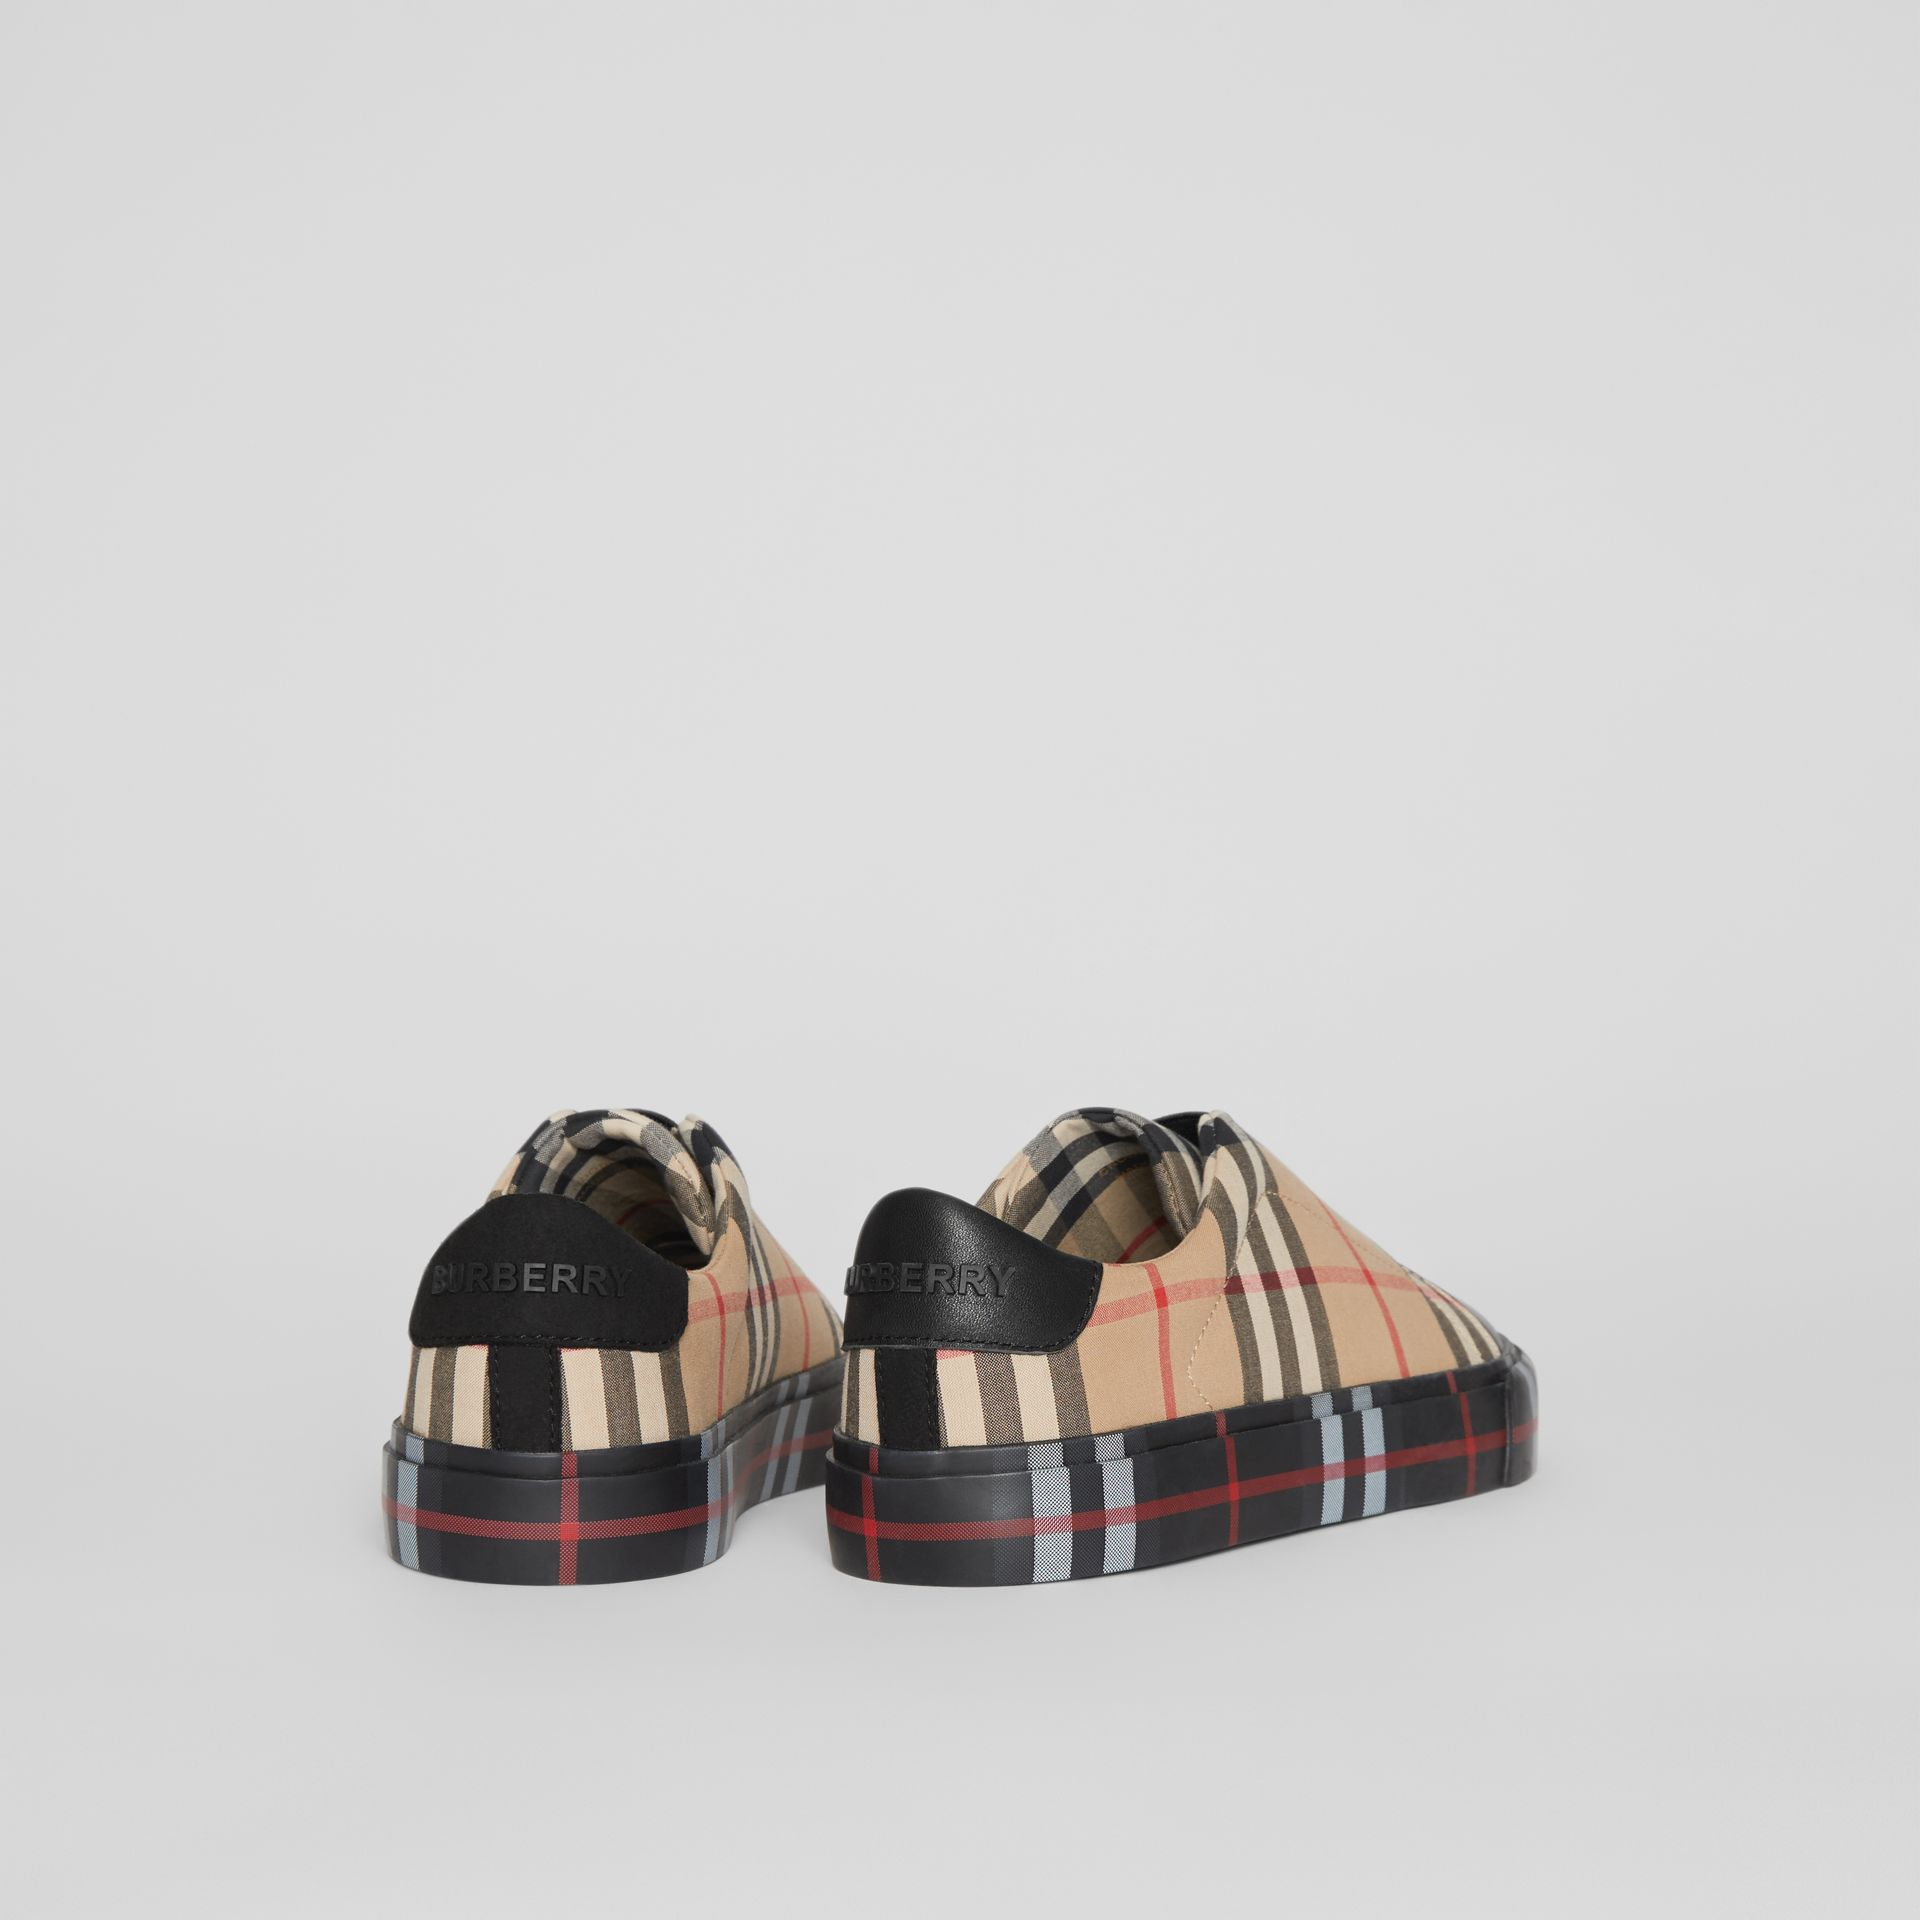 Contrast Check Slip-on Sneakers in Black/archive Beige - Children | Burberry - gallery image 2